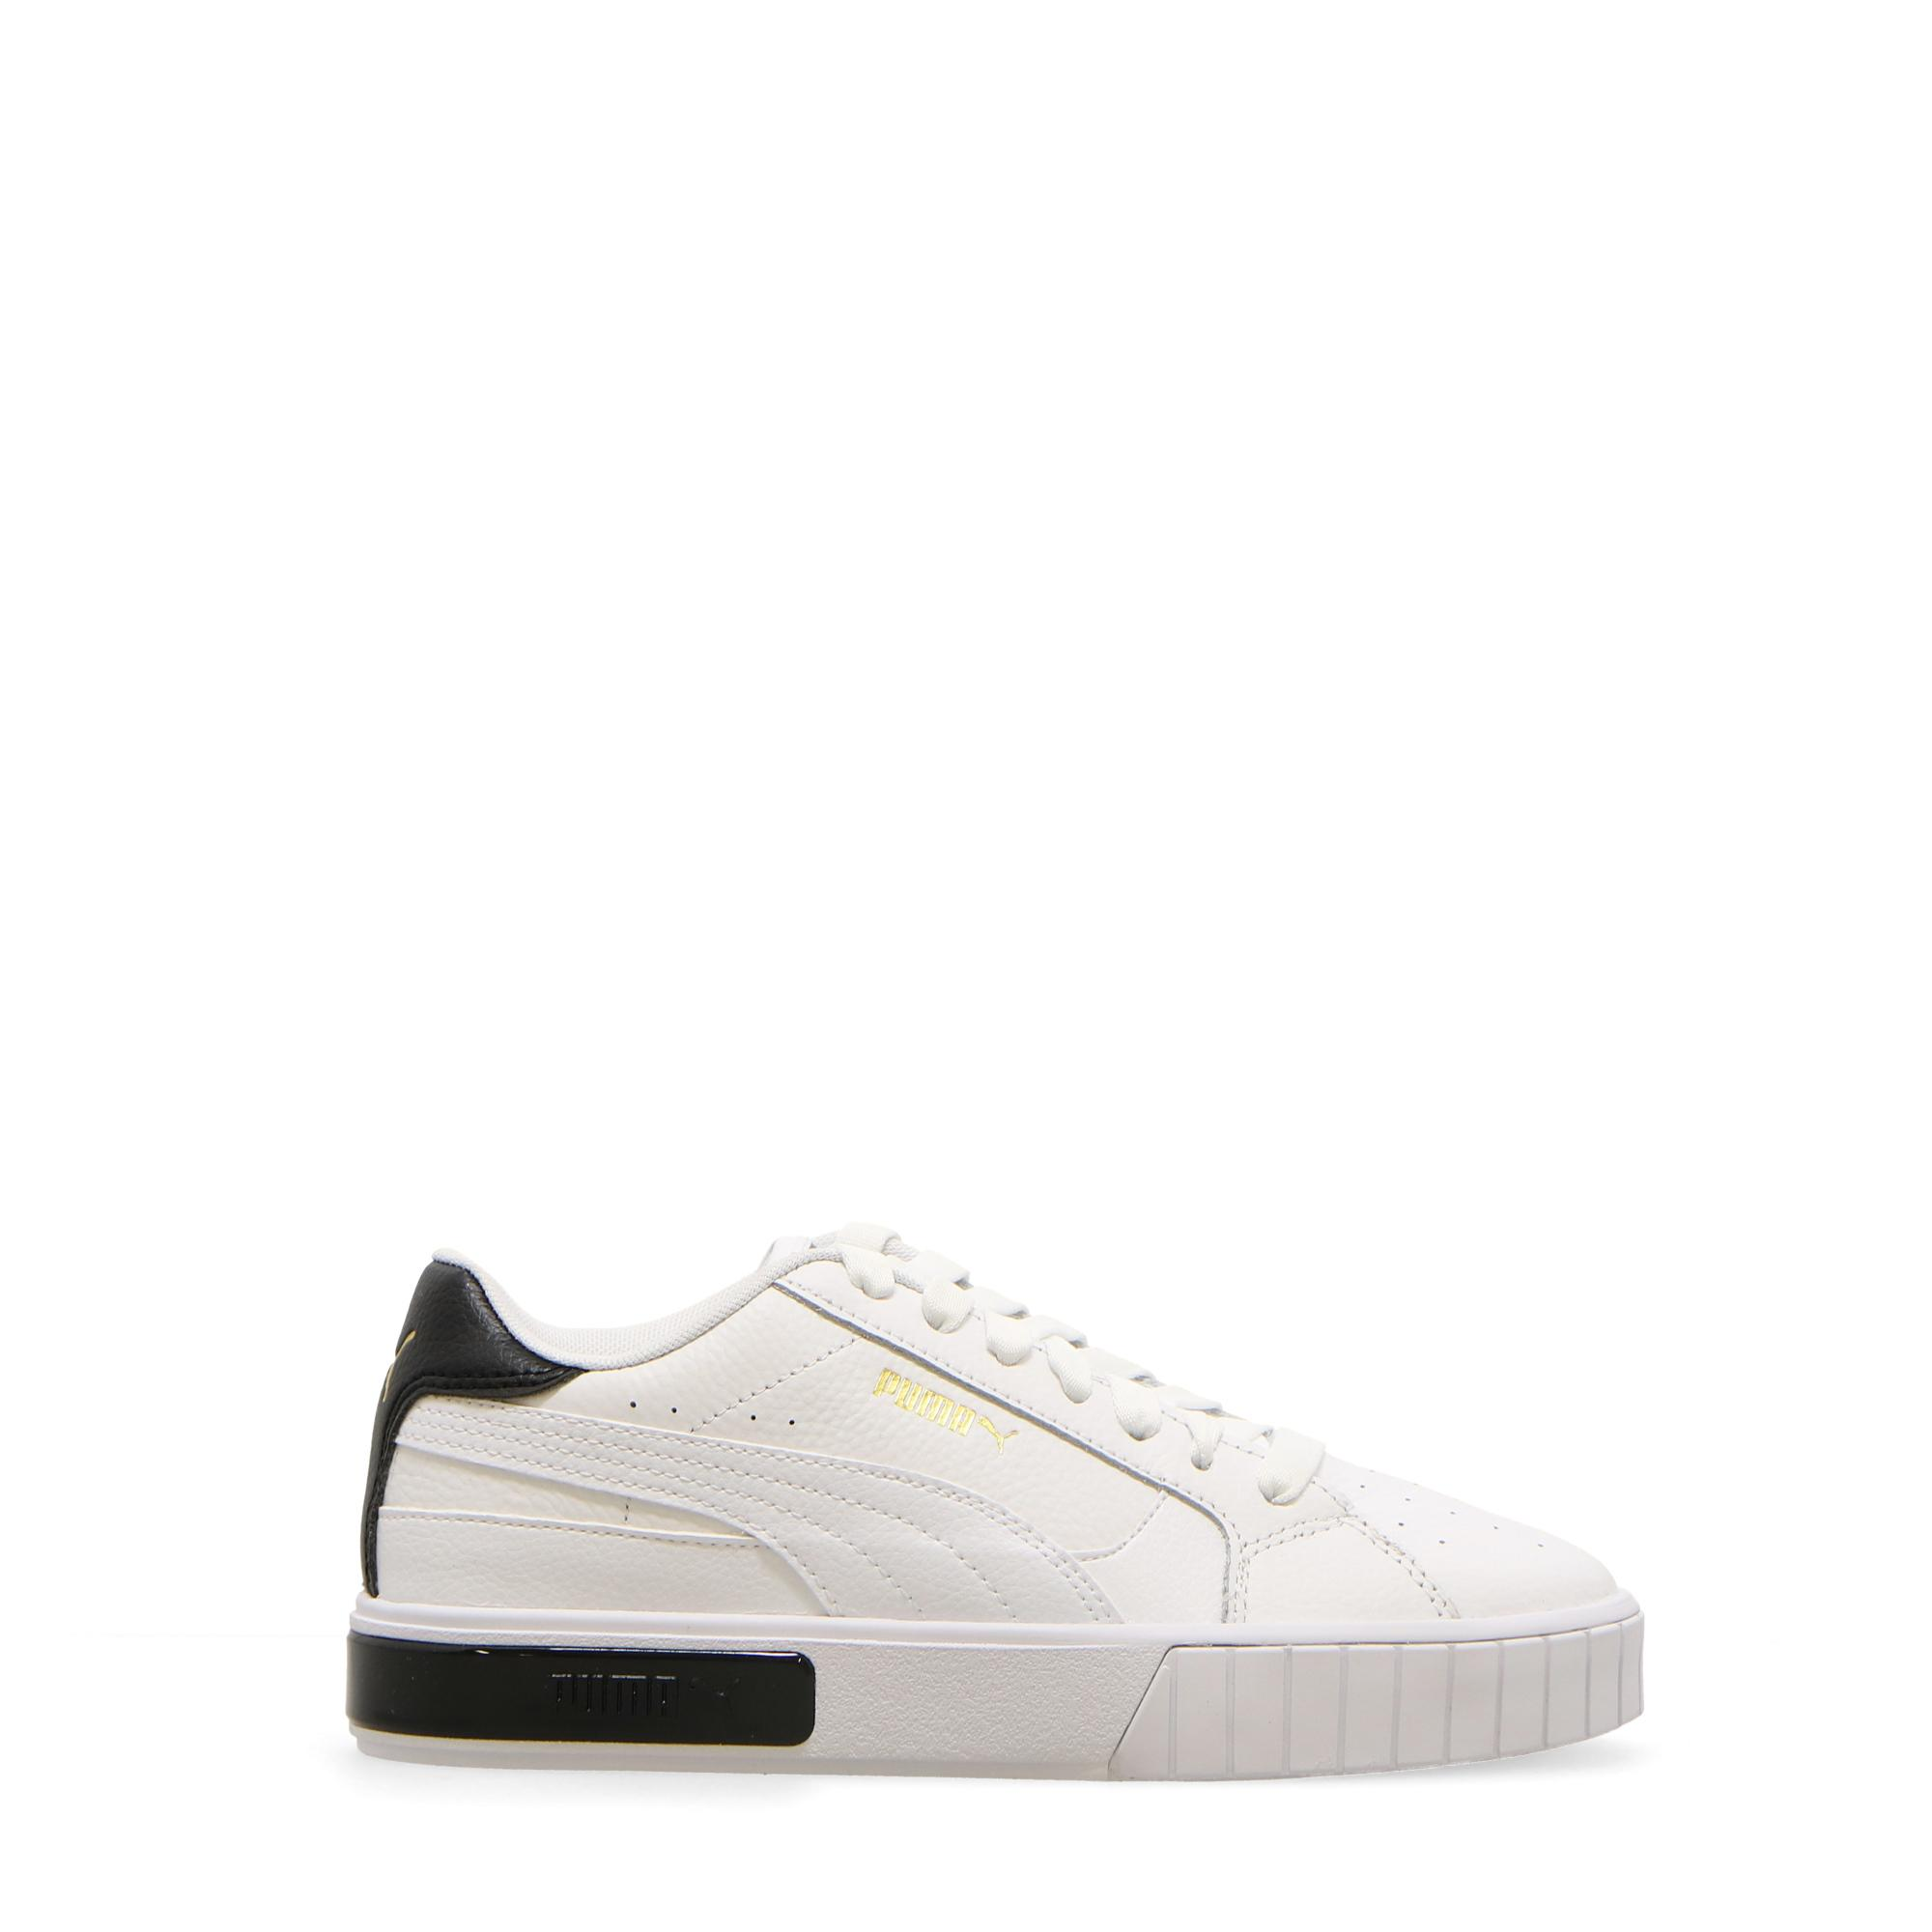 Puma Cali Star Wn's<br/> White black